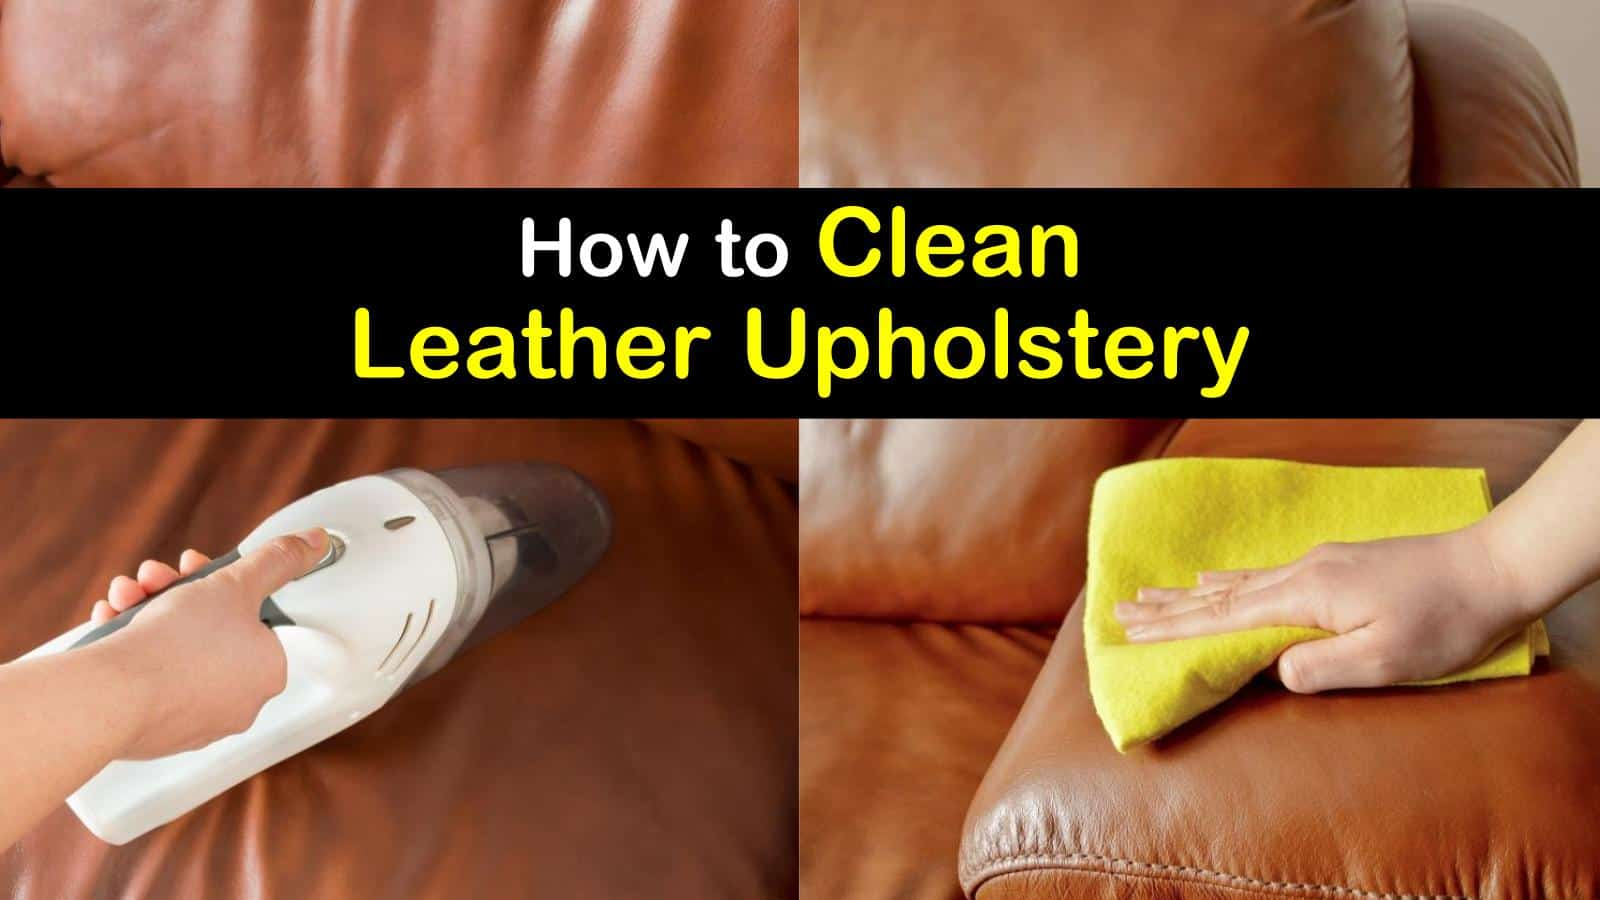 How to Clean Leather Upholstery - The Ultimate Guide titleimg1